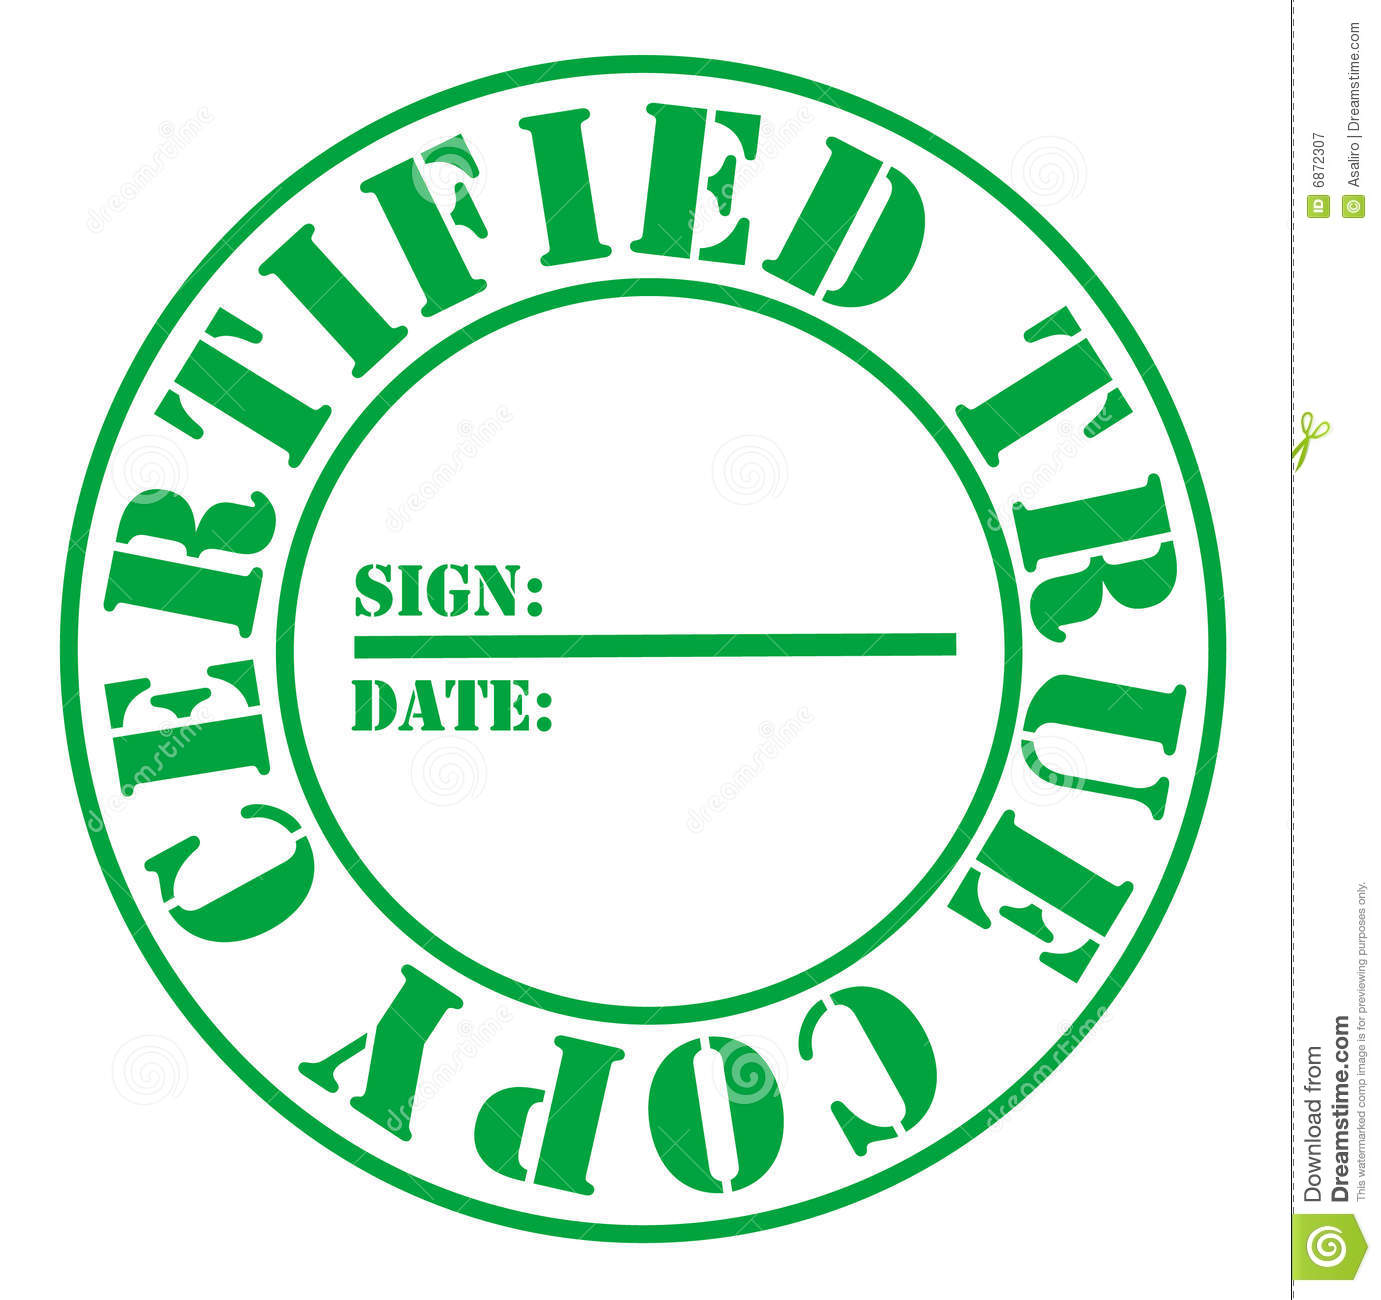 certified true copy red royalty free stock photo image 6873665